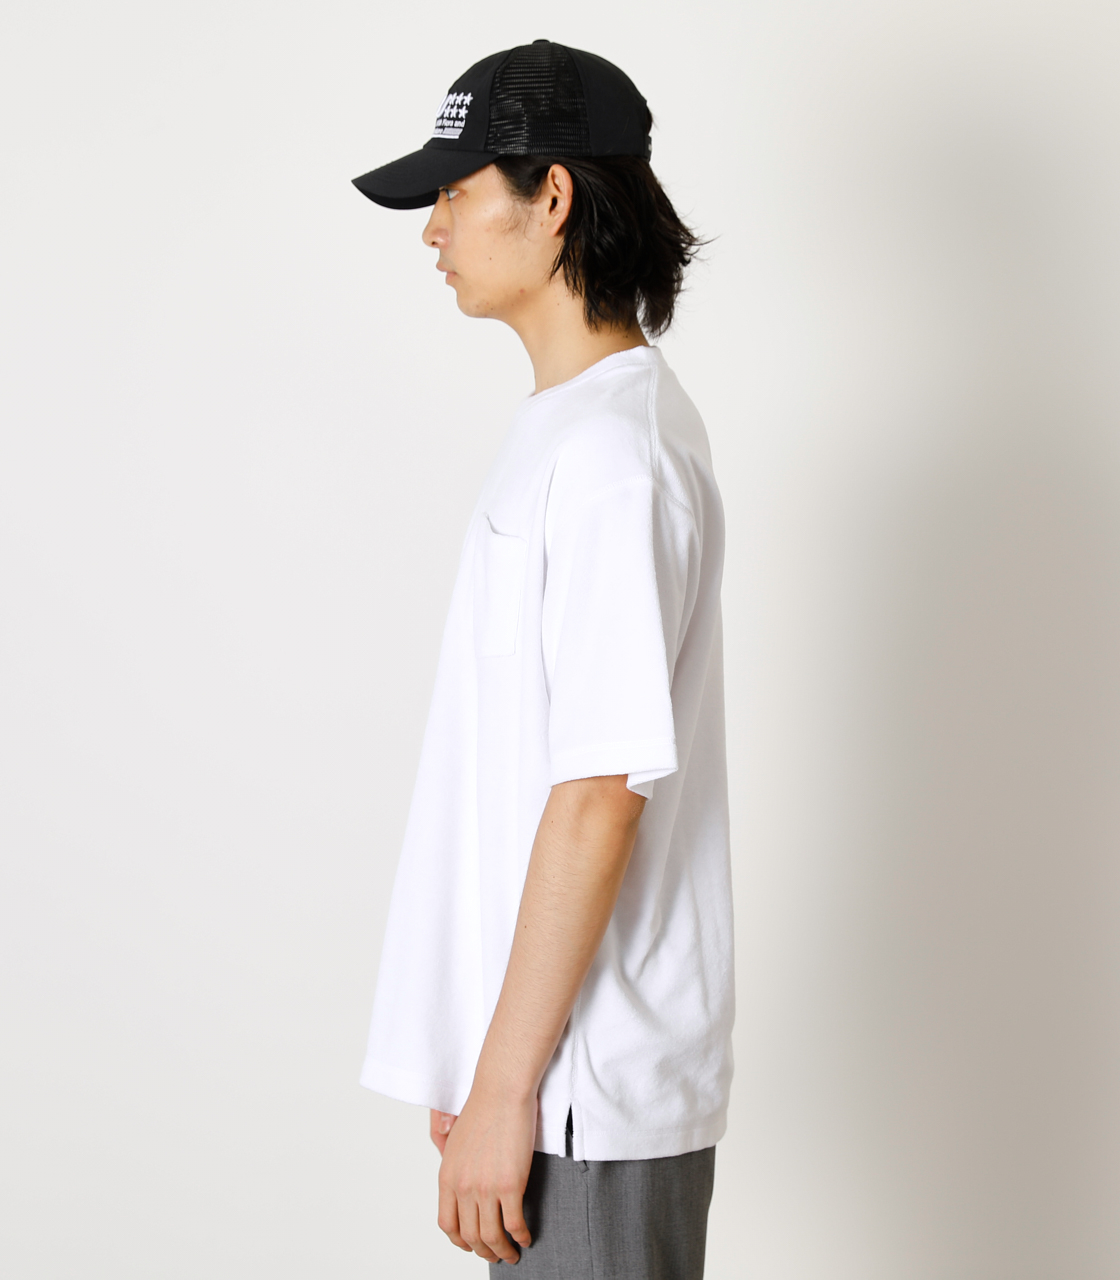 LOOSE PILE TOPS/ルーズパイルトップス 詳細画像 WHT 5